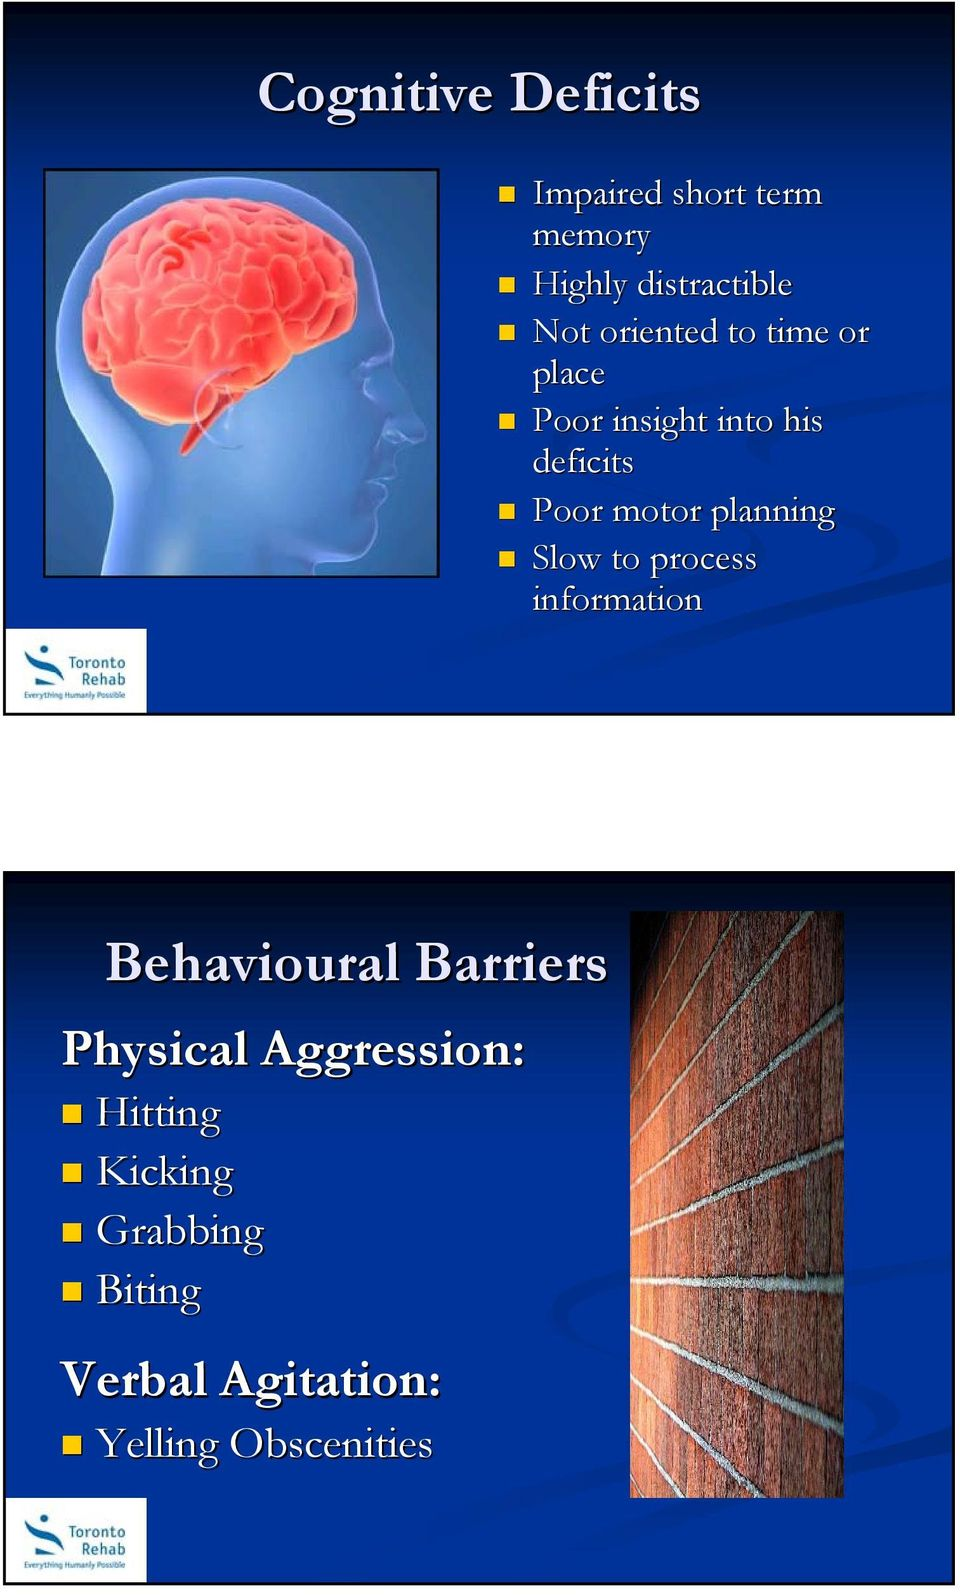 planning Slow to process information Behavioural Barriers Physical